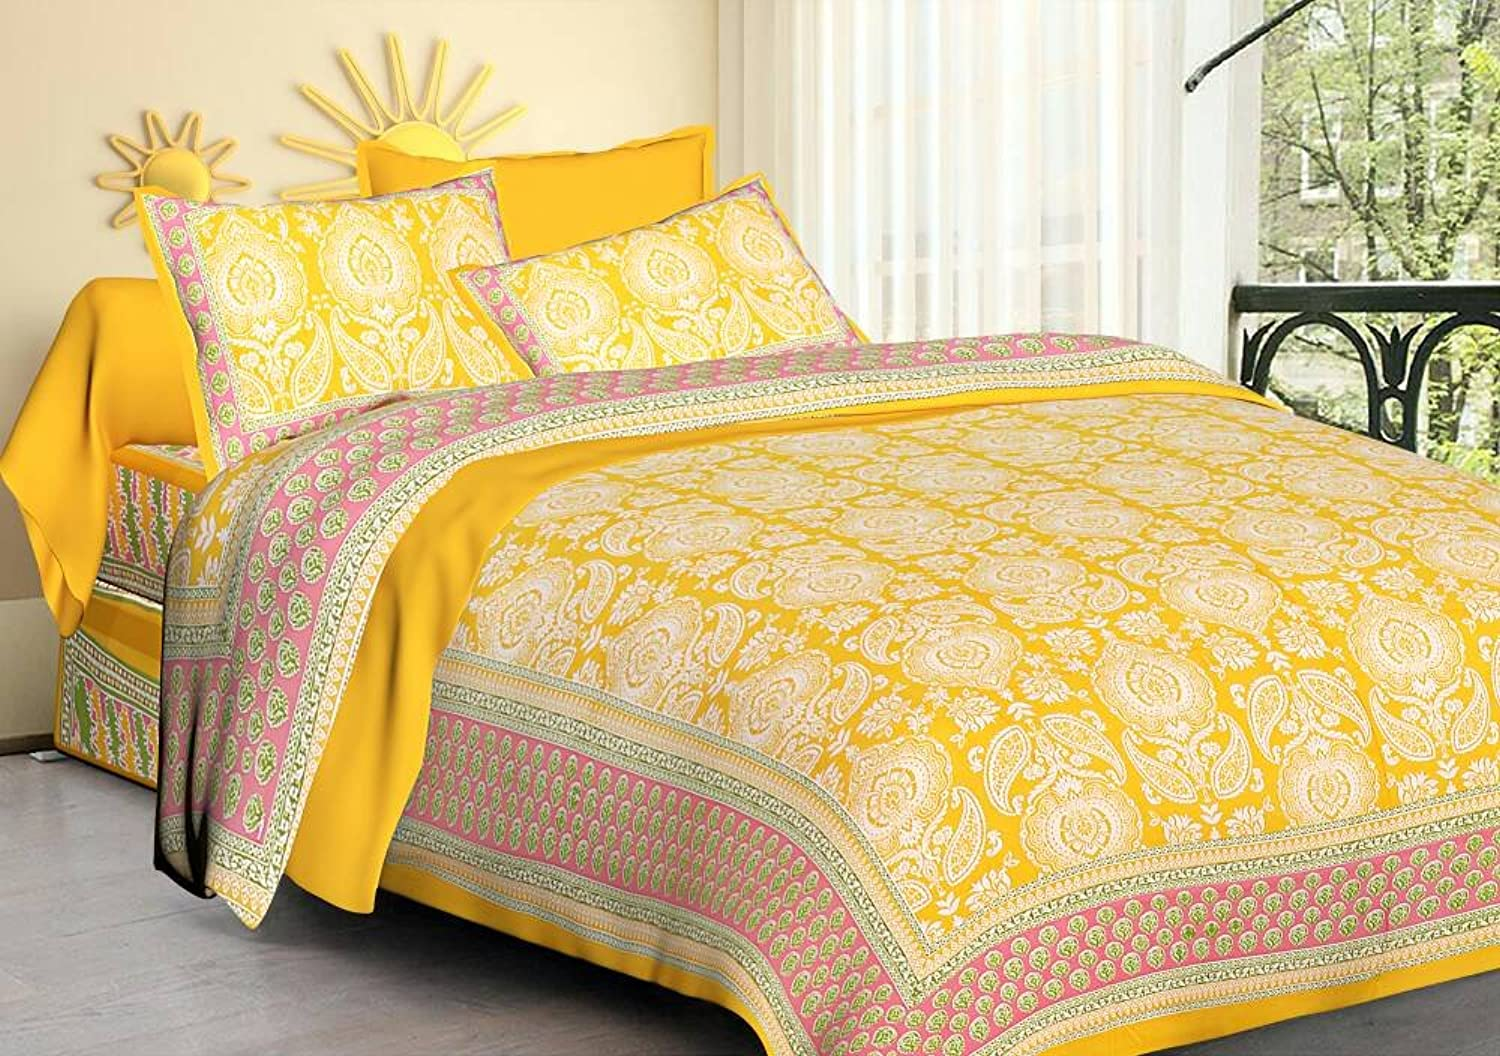 Double Bedsheet Cotton Printed Double Bedsheet with 2 Pillow Covers Fitted Double Bed Sheet Bed Cover Bedspreads Luxury Comfortable Pure 100% Cotton Bed Sheet Exclusive by Gemsandcraft Code1394